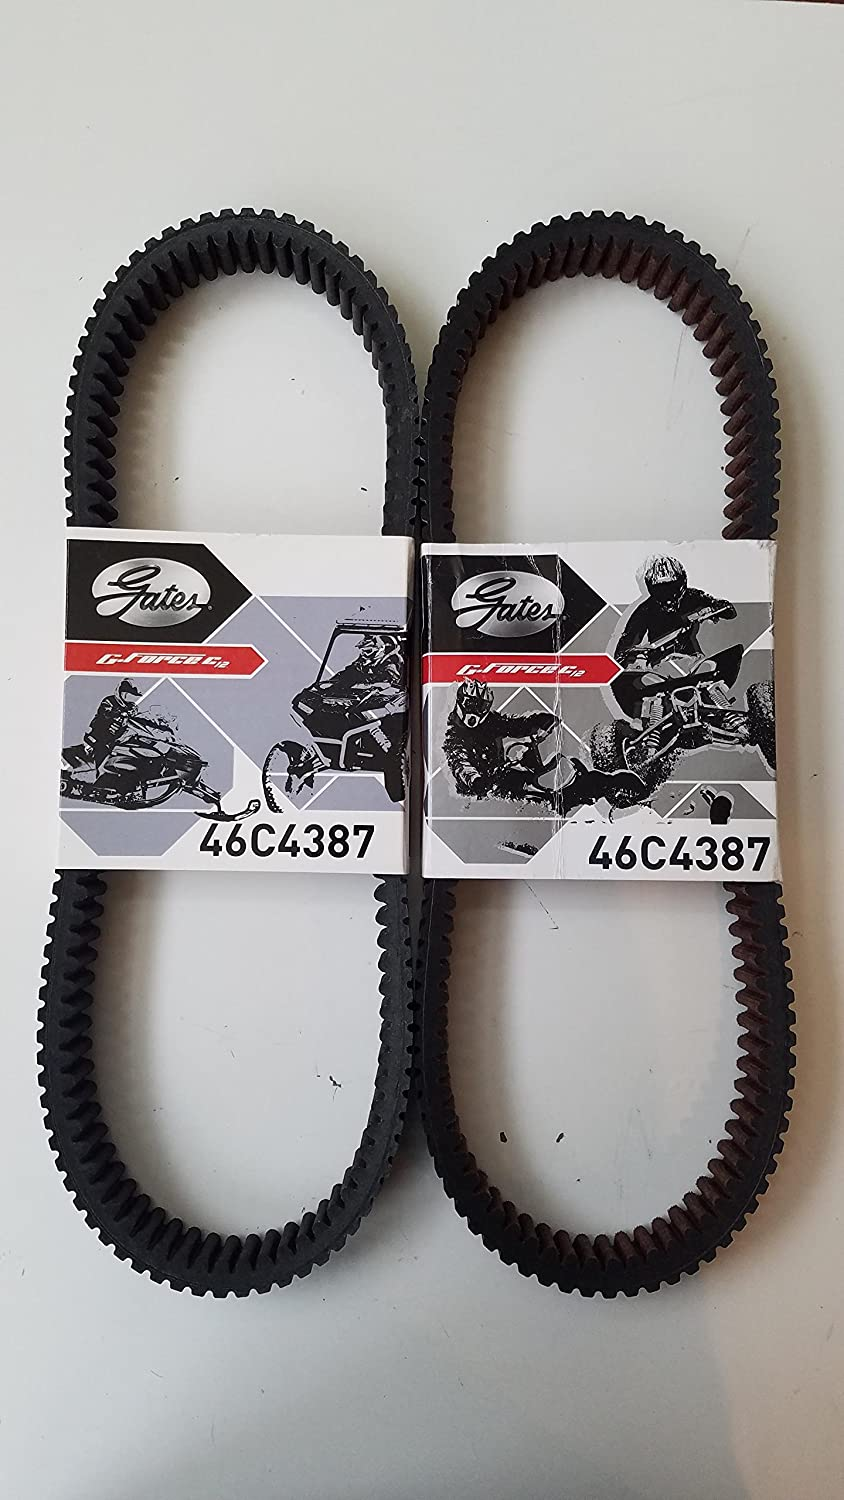 Gates Drive Belt for 2015-18 Polaris Axys (46C4387) by Gates 2-Pack